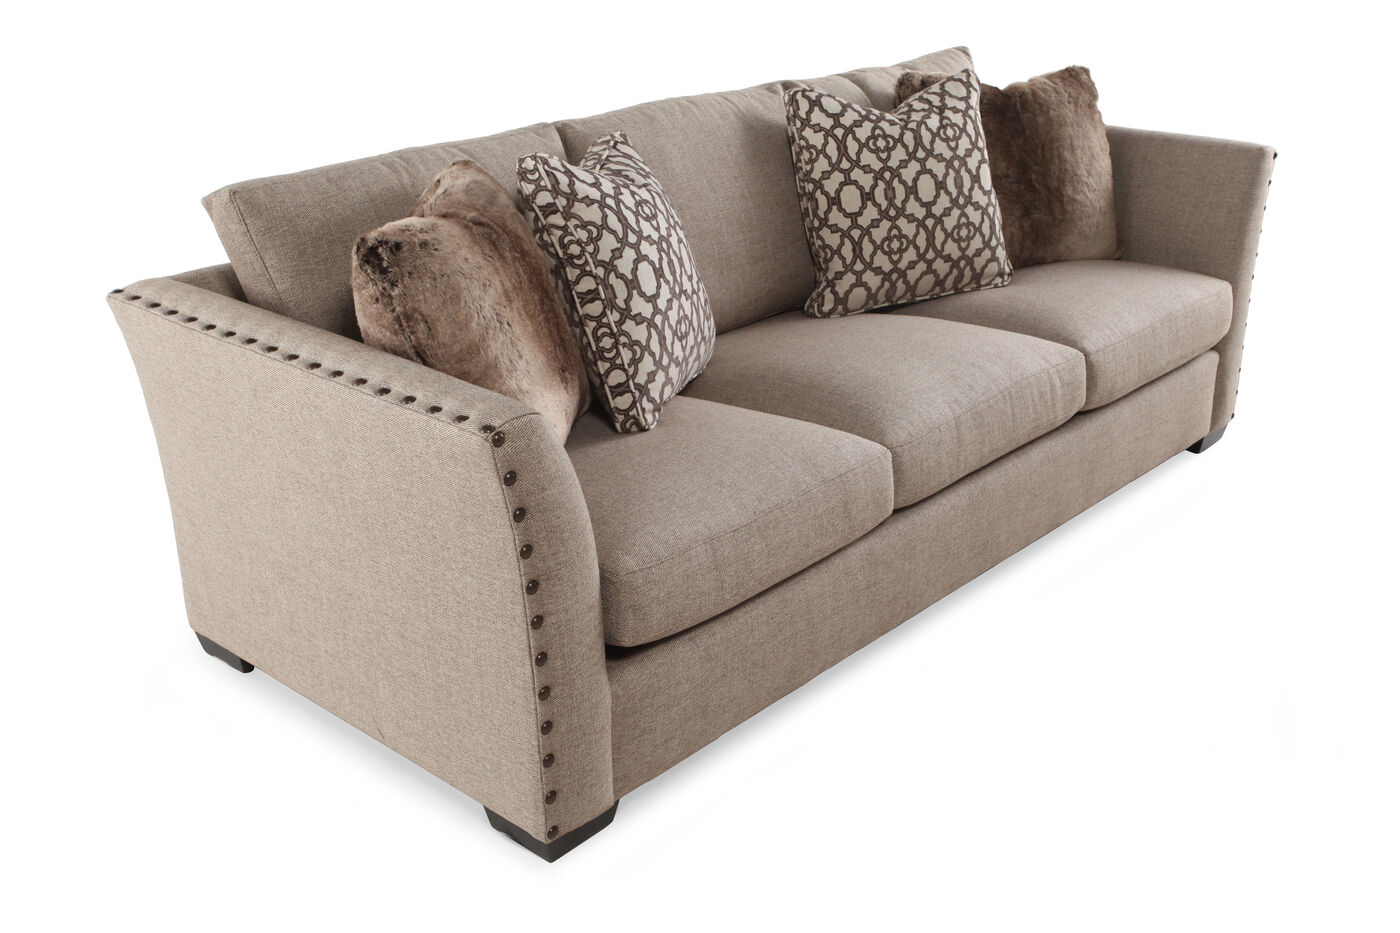 contemporary nailhead accented 94 5 sofa in dove gray mathis brothers furniture. Black Bedroom Furniture Sets. Home Design Ideas